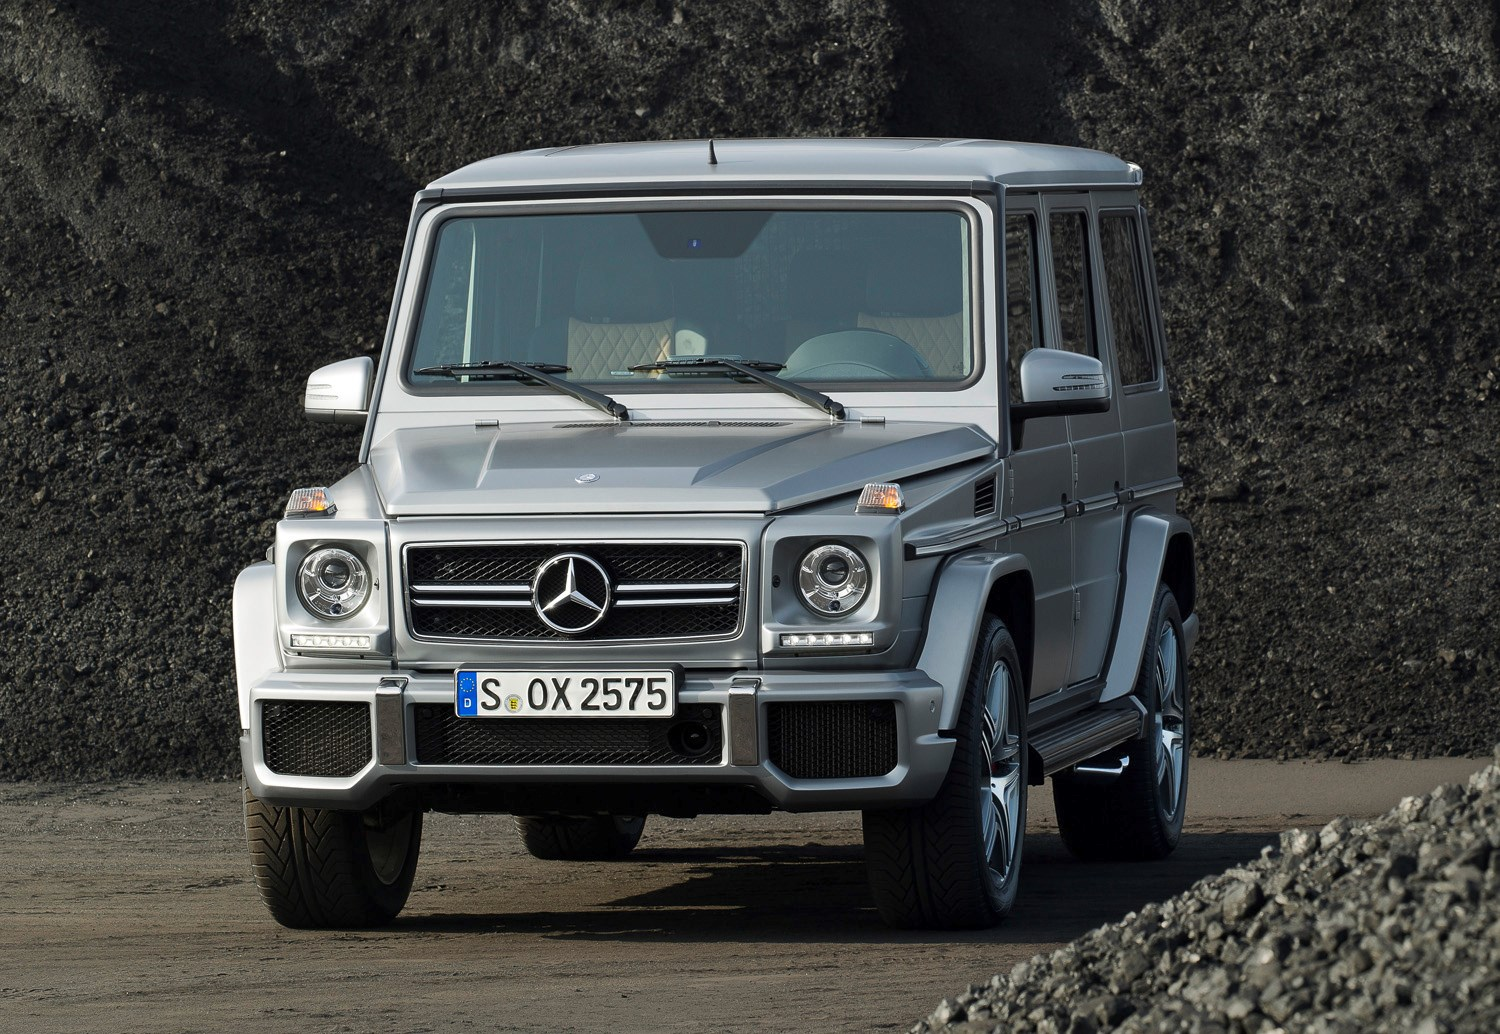 Mercedes benz g class amg review 2012 parkers for Mercedes benz g class amg